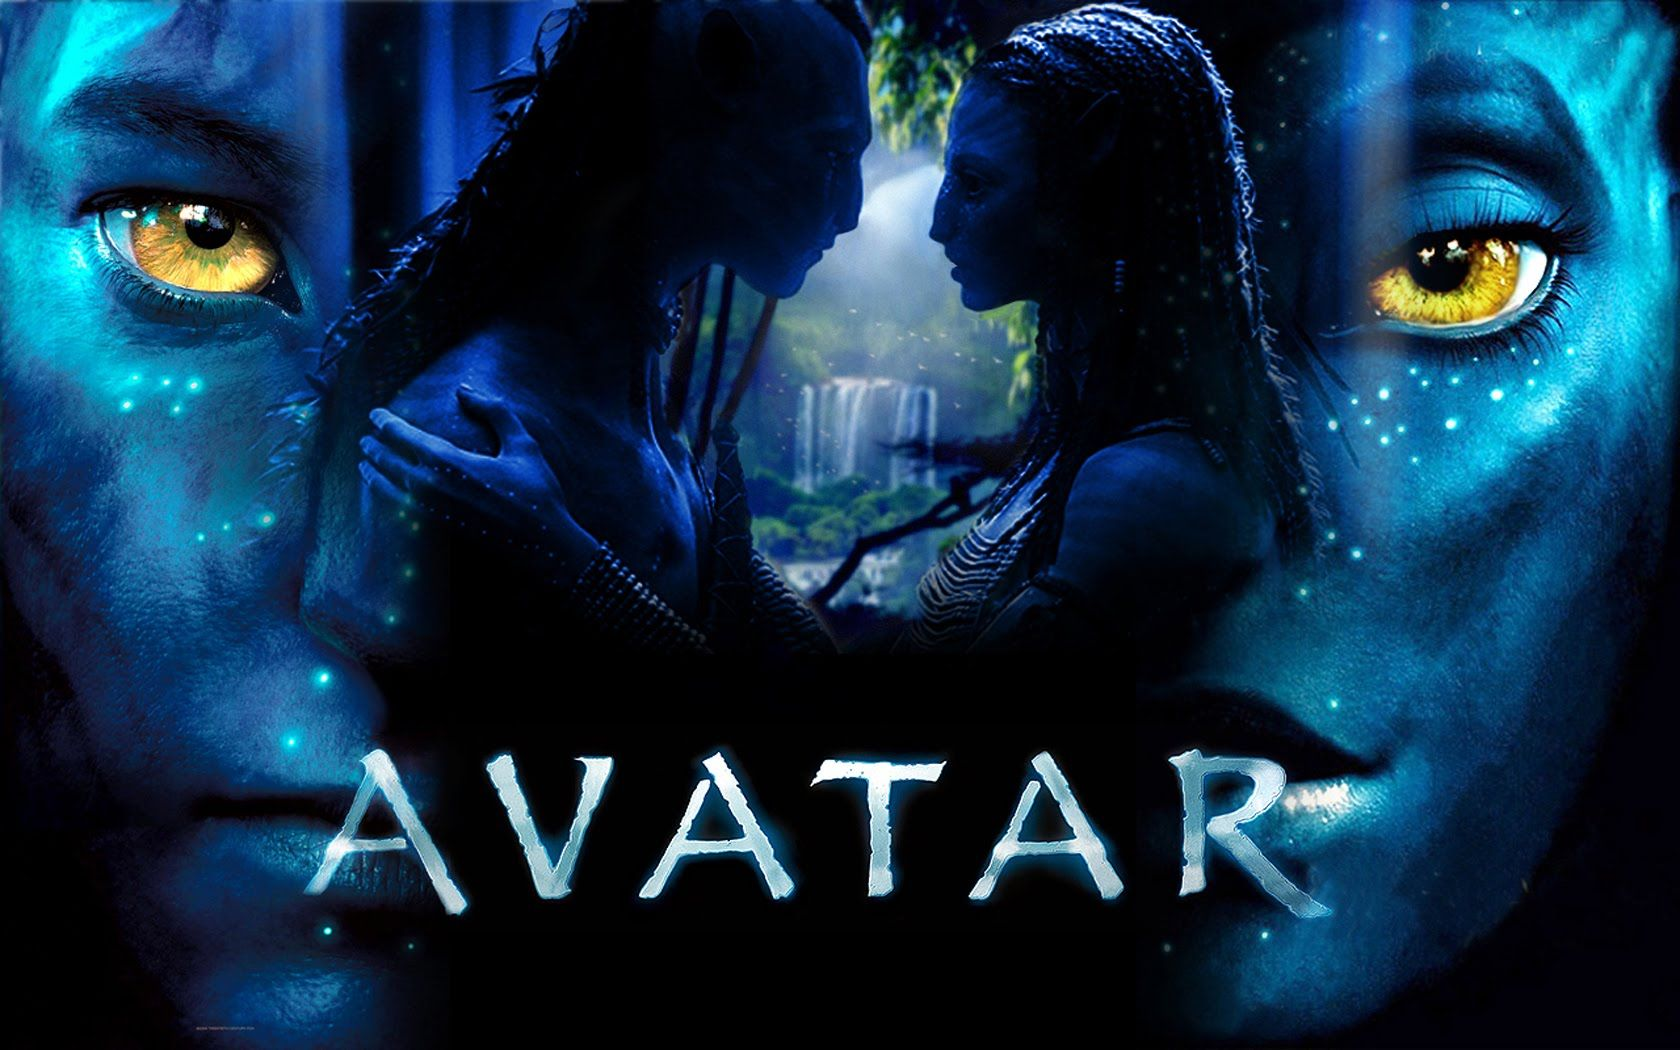 Download Avatar 2009 Online Movie From Safe And Secure Links For